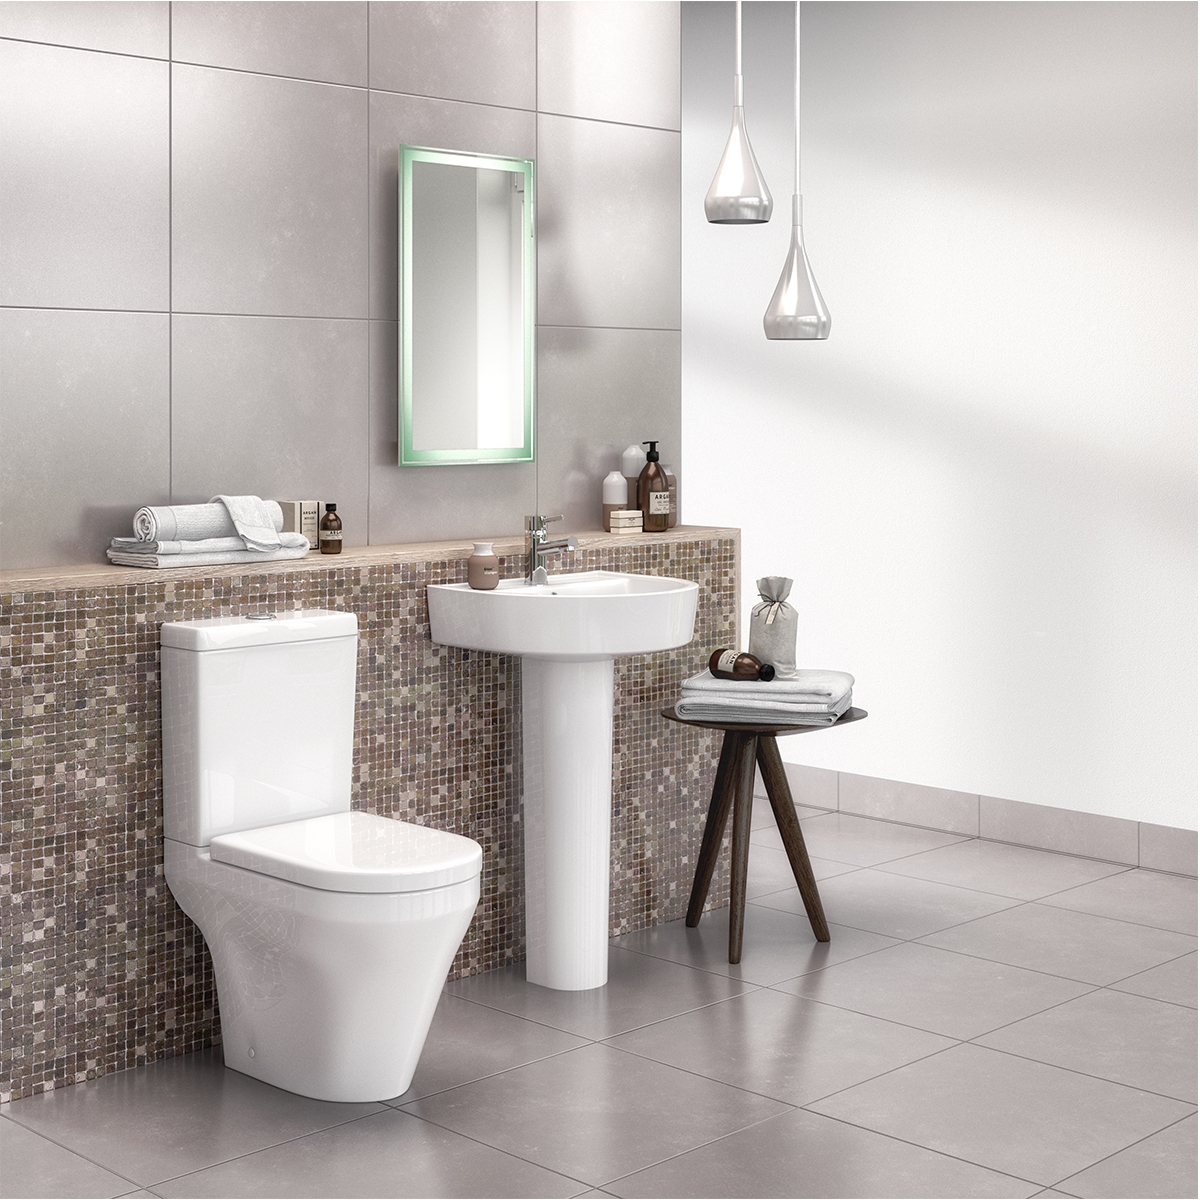 Premier Marlow Flush-Fit Close Coupled Toilet WC Push Button Cistern - Excluding Seat